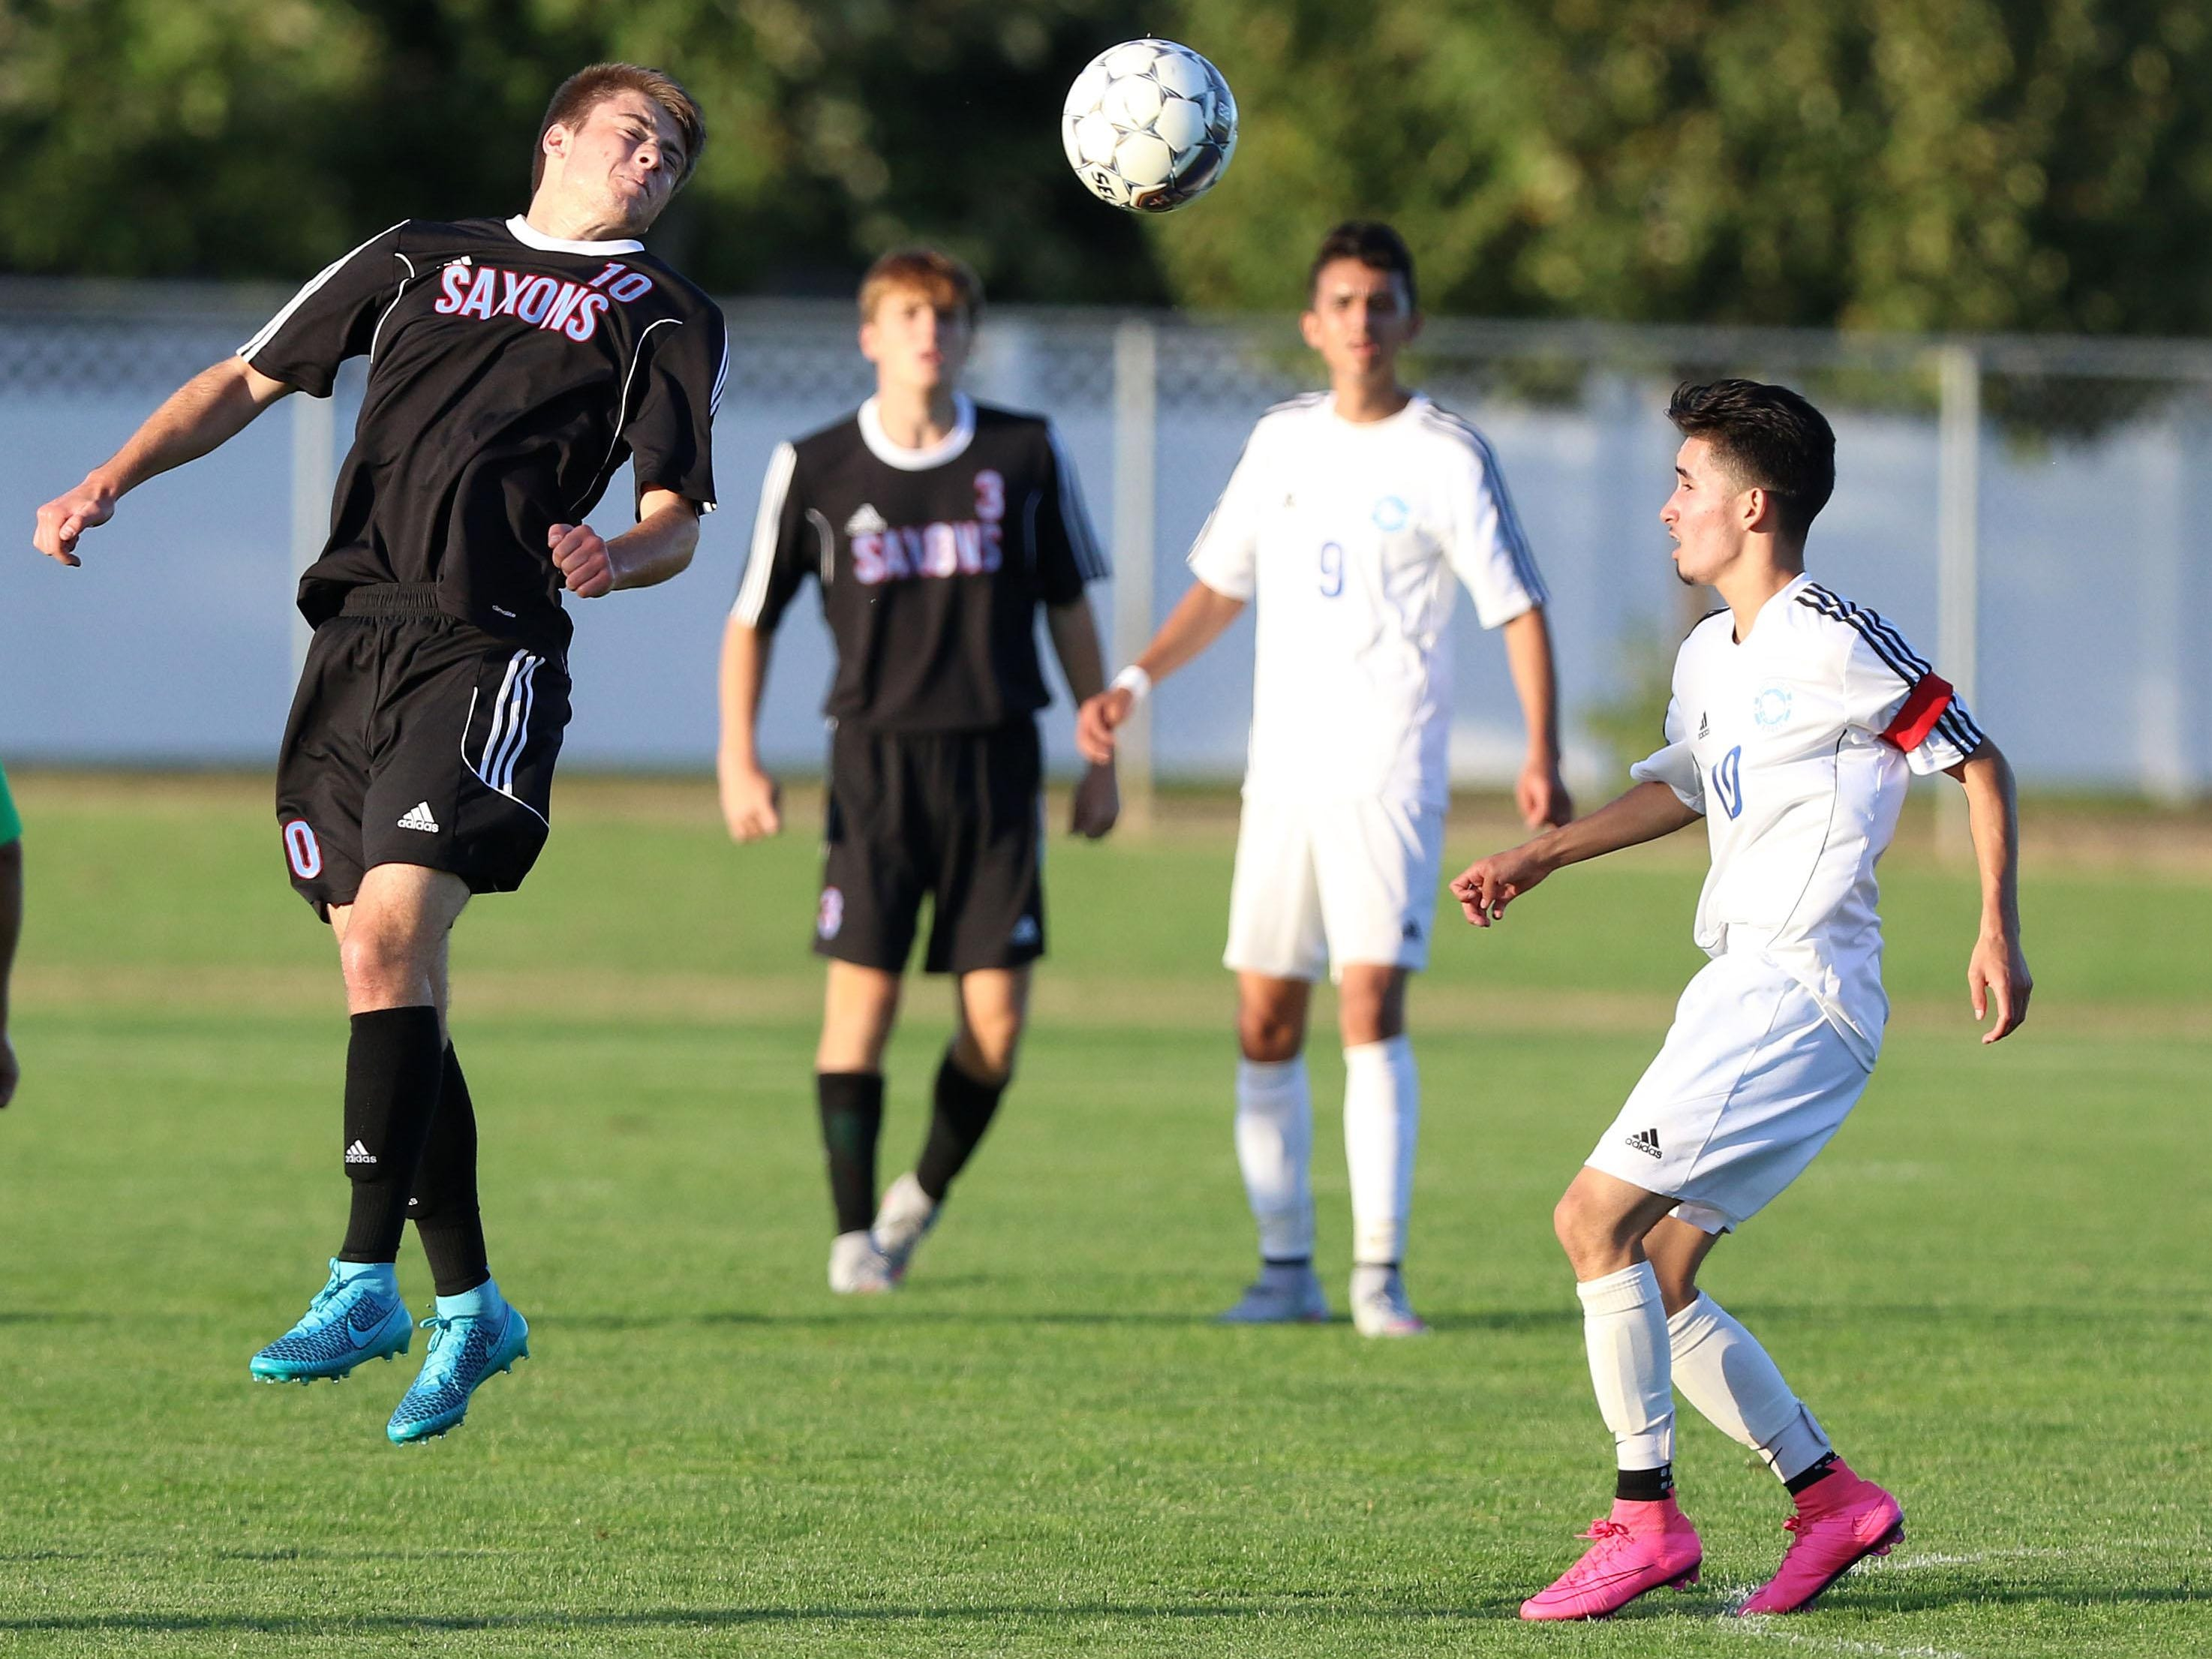 South Salem High School's Isaac Morris heads the ball during their game with Woodburn on Tuesday, Sept. 8, 2015, in Woodburn.